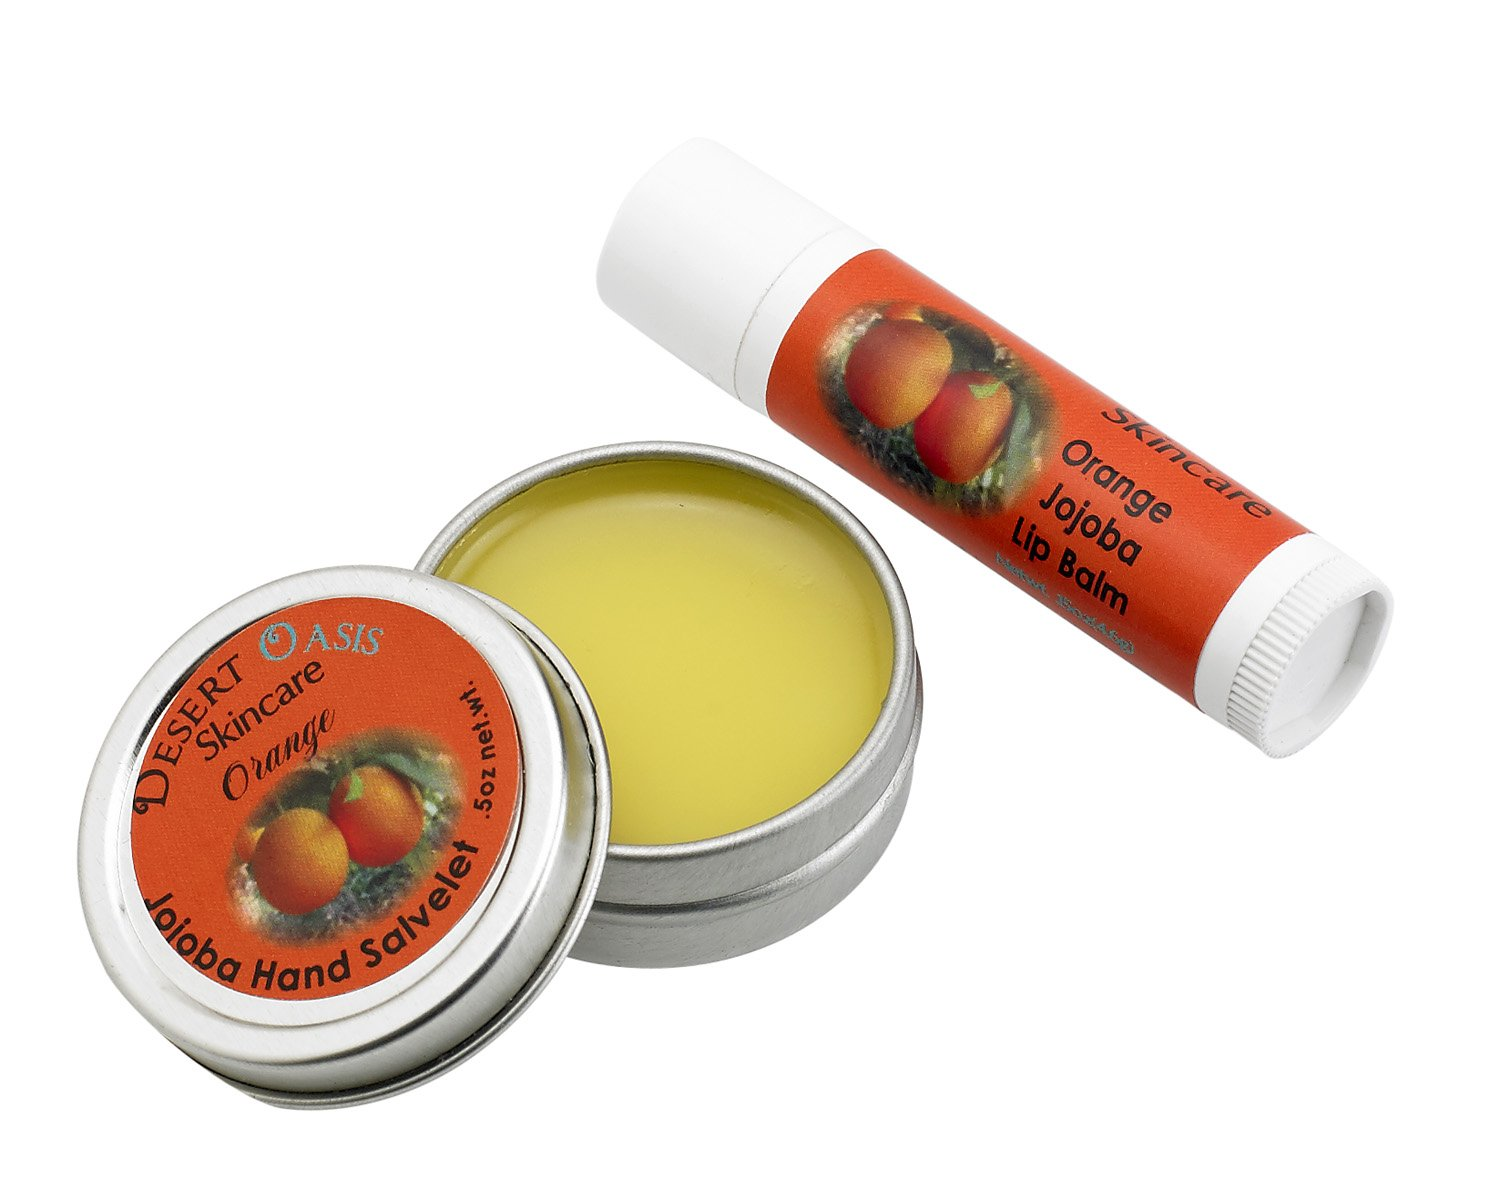 Jojoba Oil Travel Size Orange Hand Salve and Lip Balm, all natural, cold pressed and undeoderized jojoba oil and mildly scented with Orange Zest, Salve (0.5 oz/14 gm) Lip balm (0.15 oz/4.6 gm) 2 units